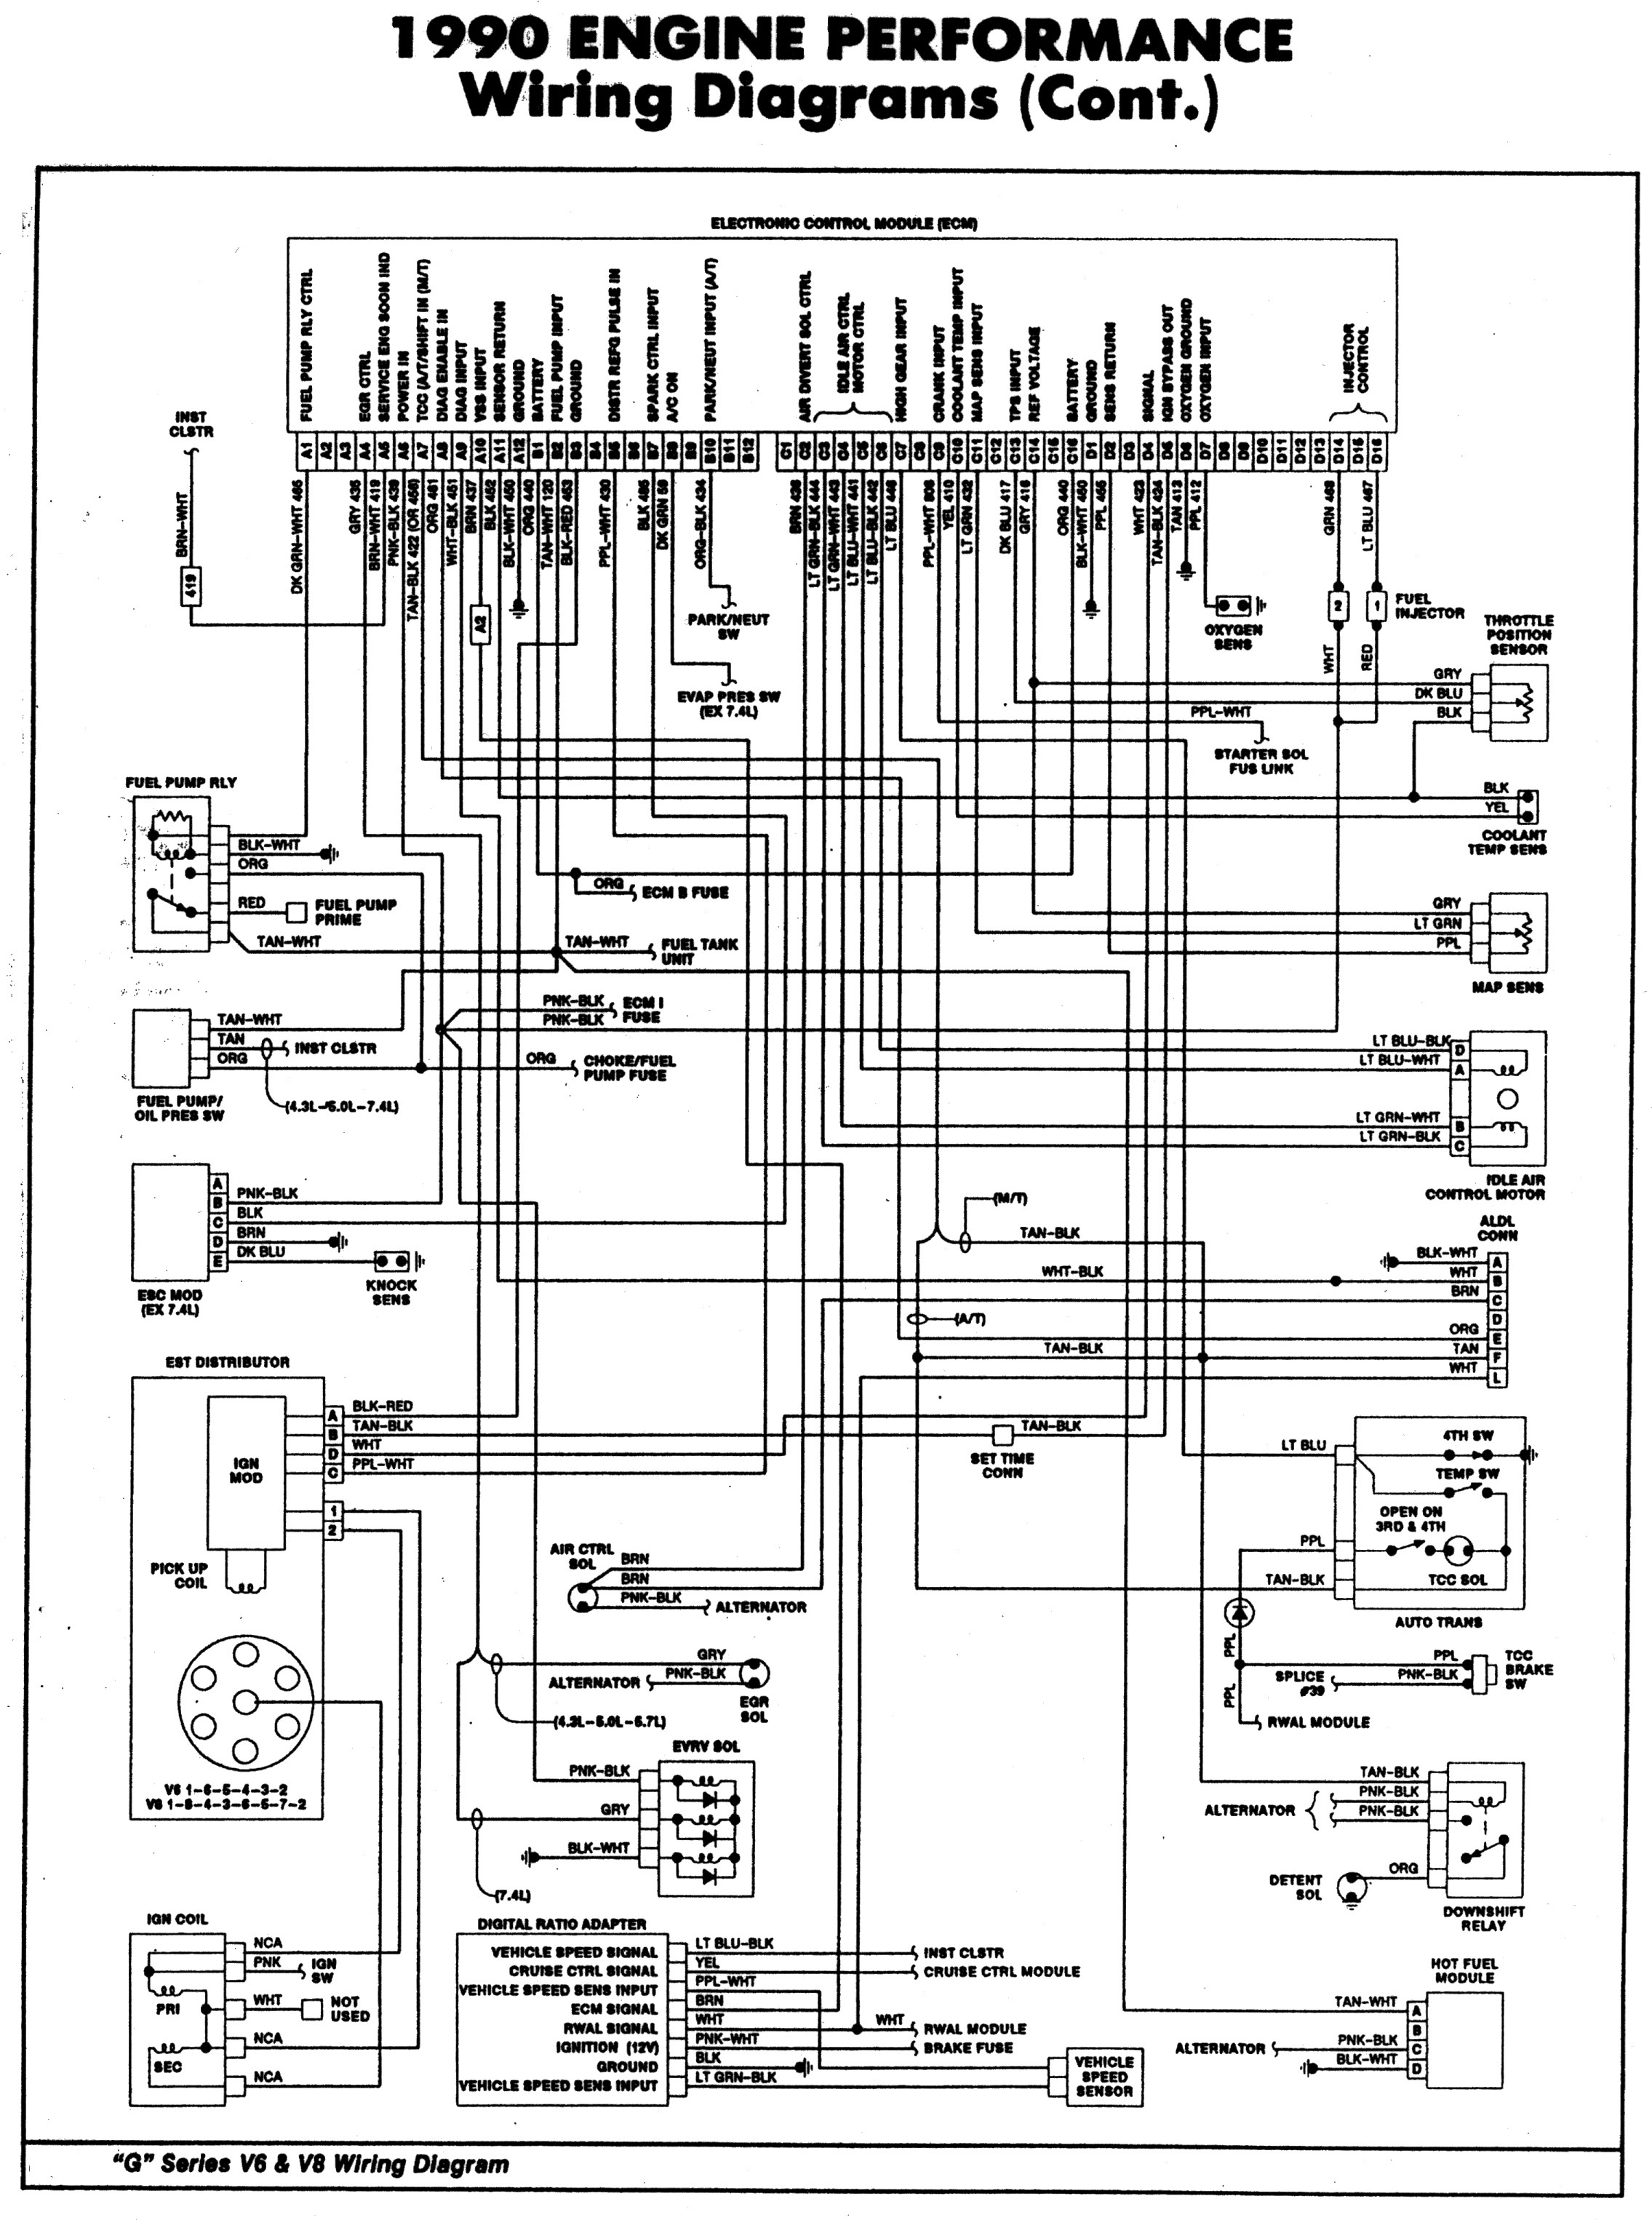 1990 gmc sierra wiring diagram simple wiring diagram rh david huggett co uk 1990  gmc k1500 wiring diagram 1990 gm wiring diagram